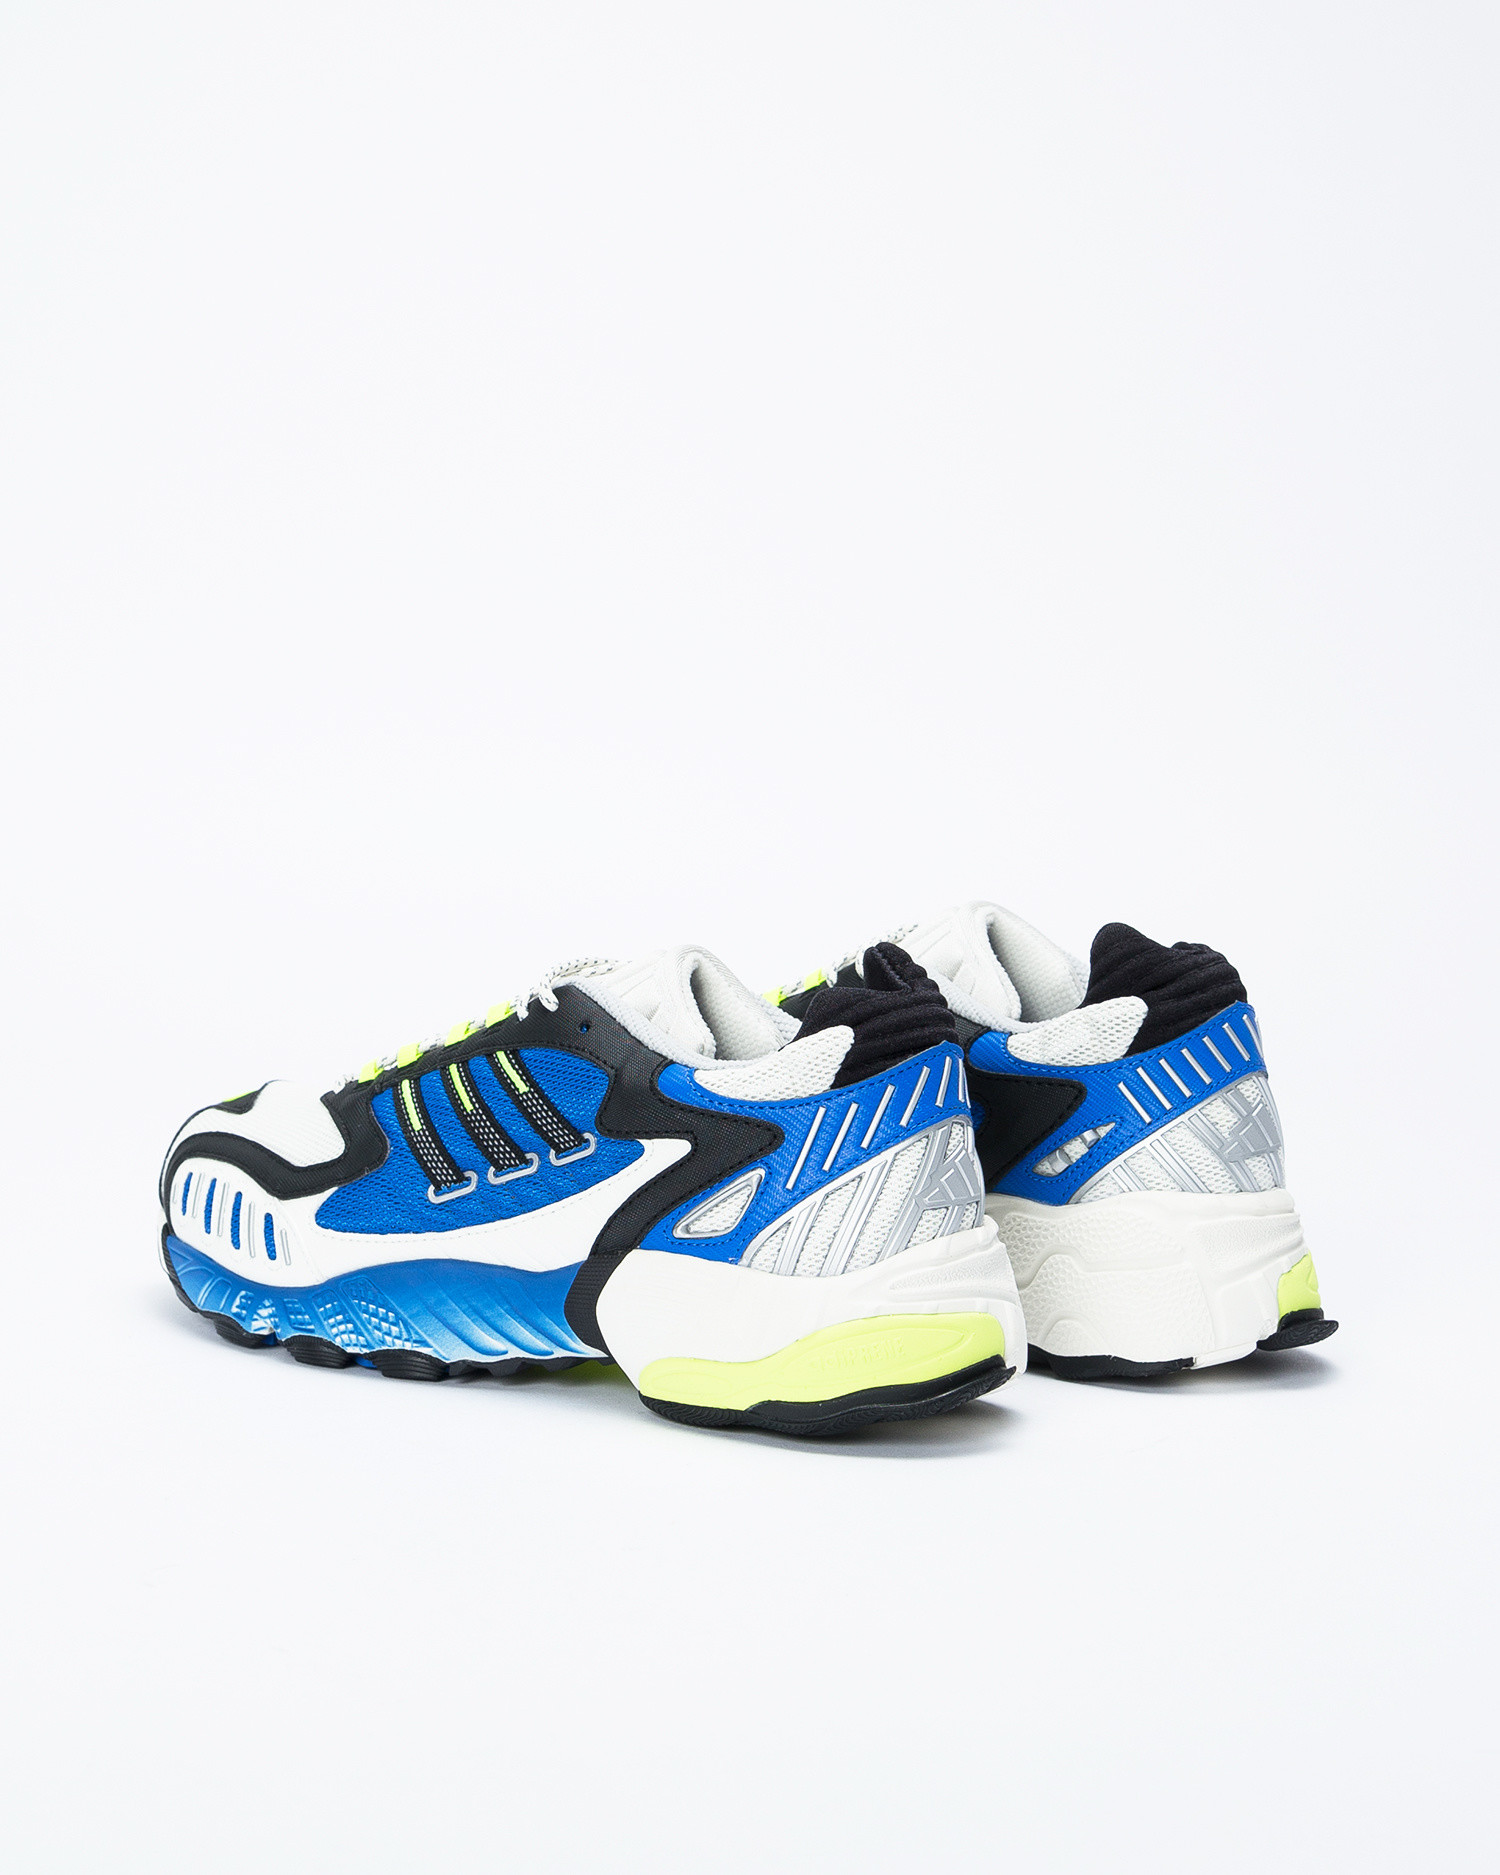 adidas Consortium Torsion Trdc off white/core black/solar yellow